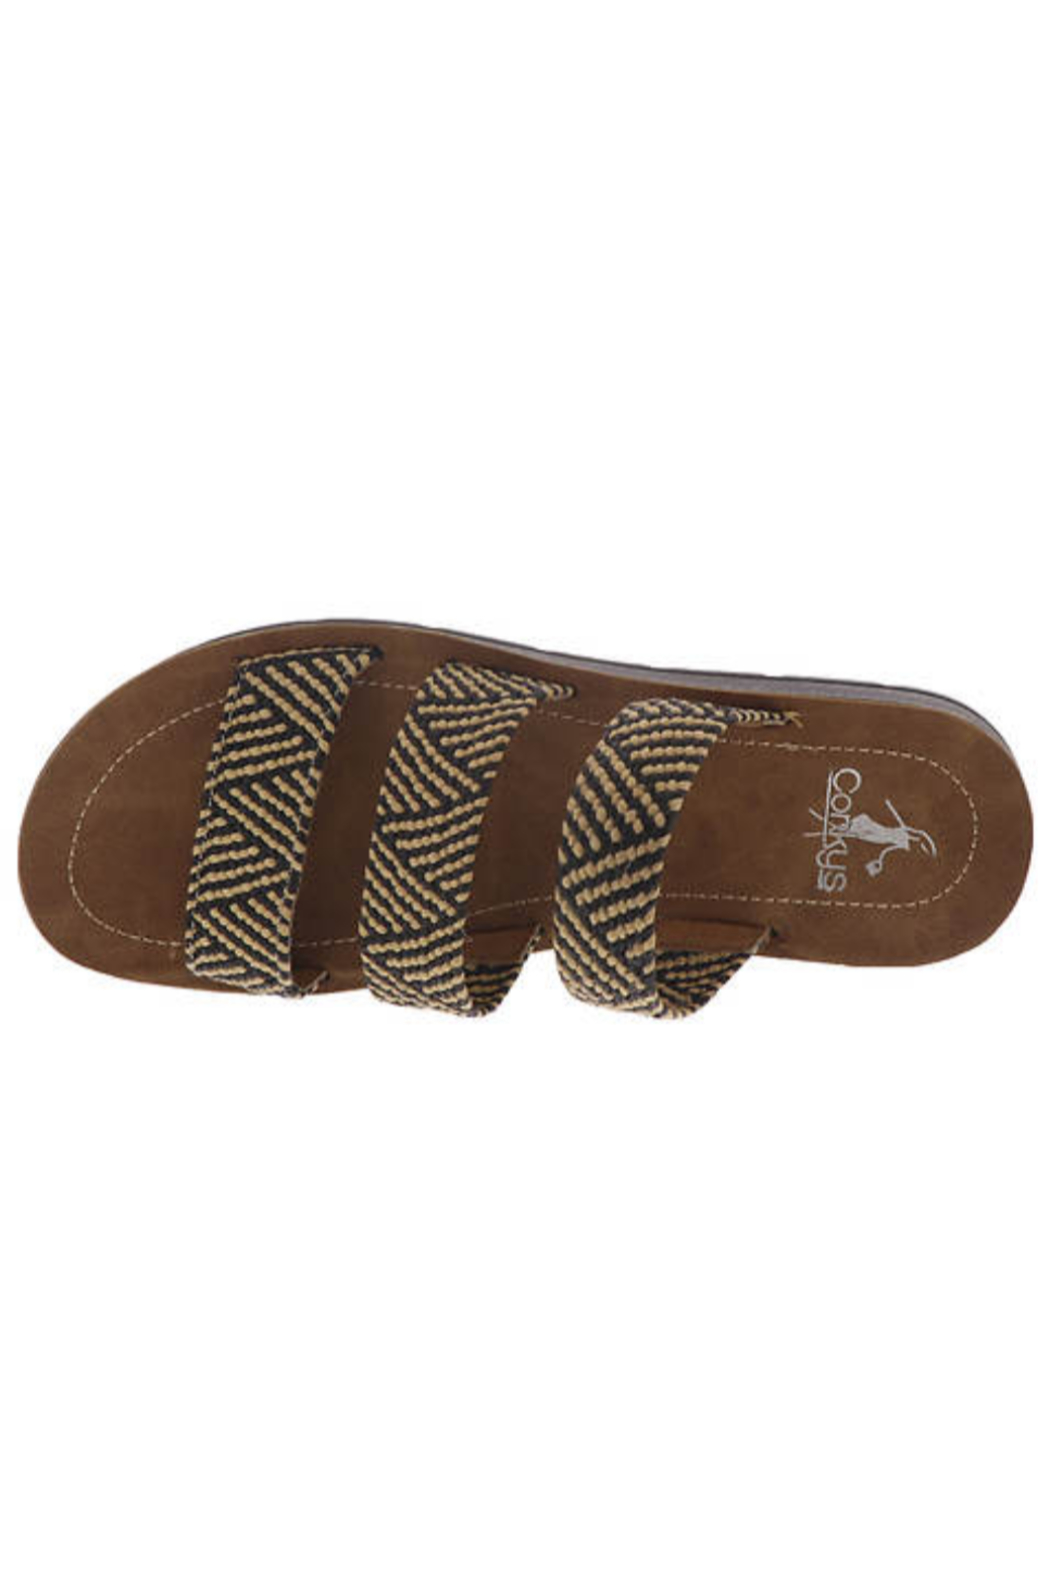 Corky's Shoes DAFNE WOVEN SANDAL - Front Full Image